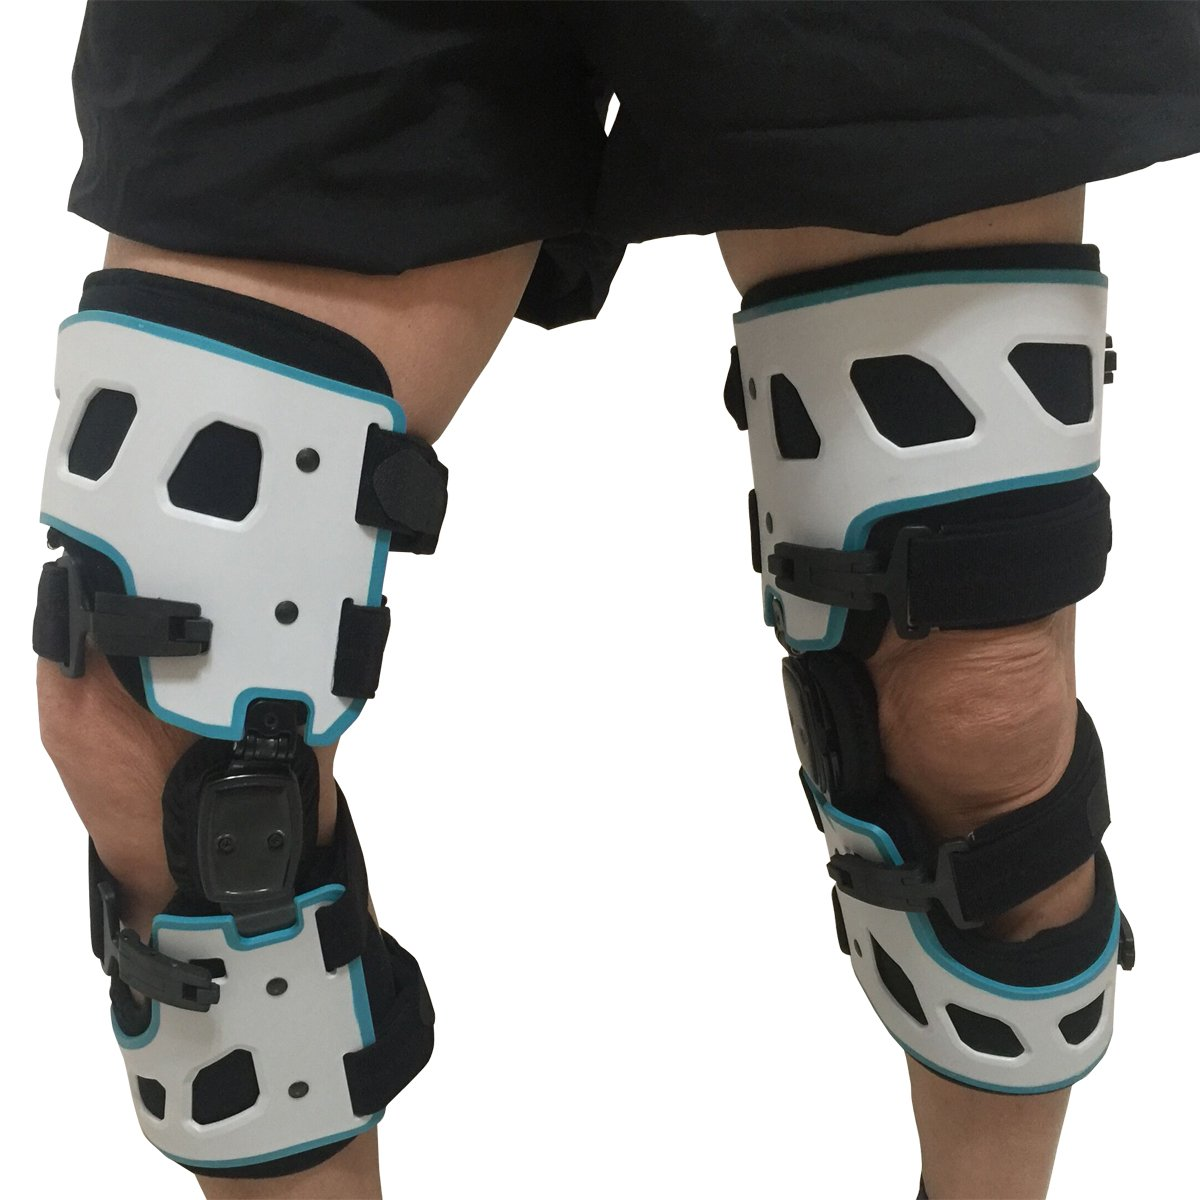 Orthomen OA Unloading Knee Brace for Arthritis, Cartilage Injury, and Bone-On-Bone Pain, Medial - Universal (Right) by Orthomen (Image #6)